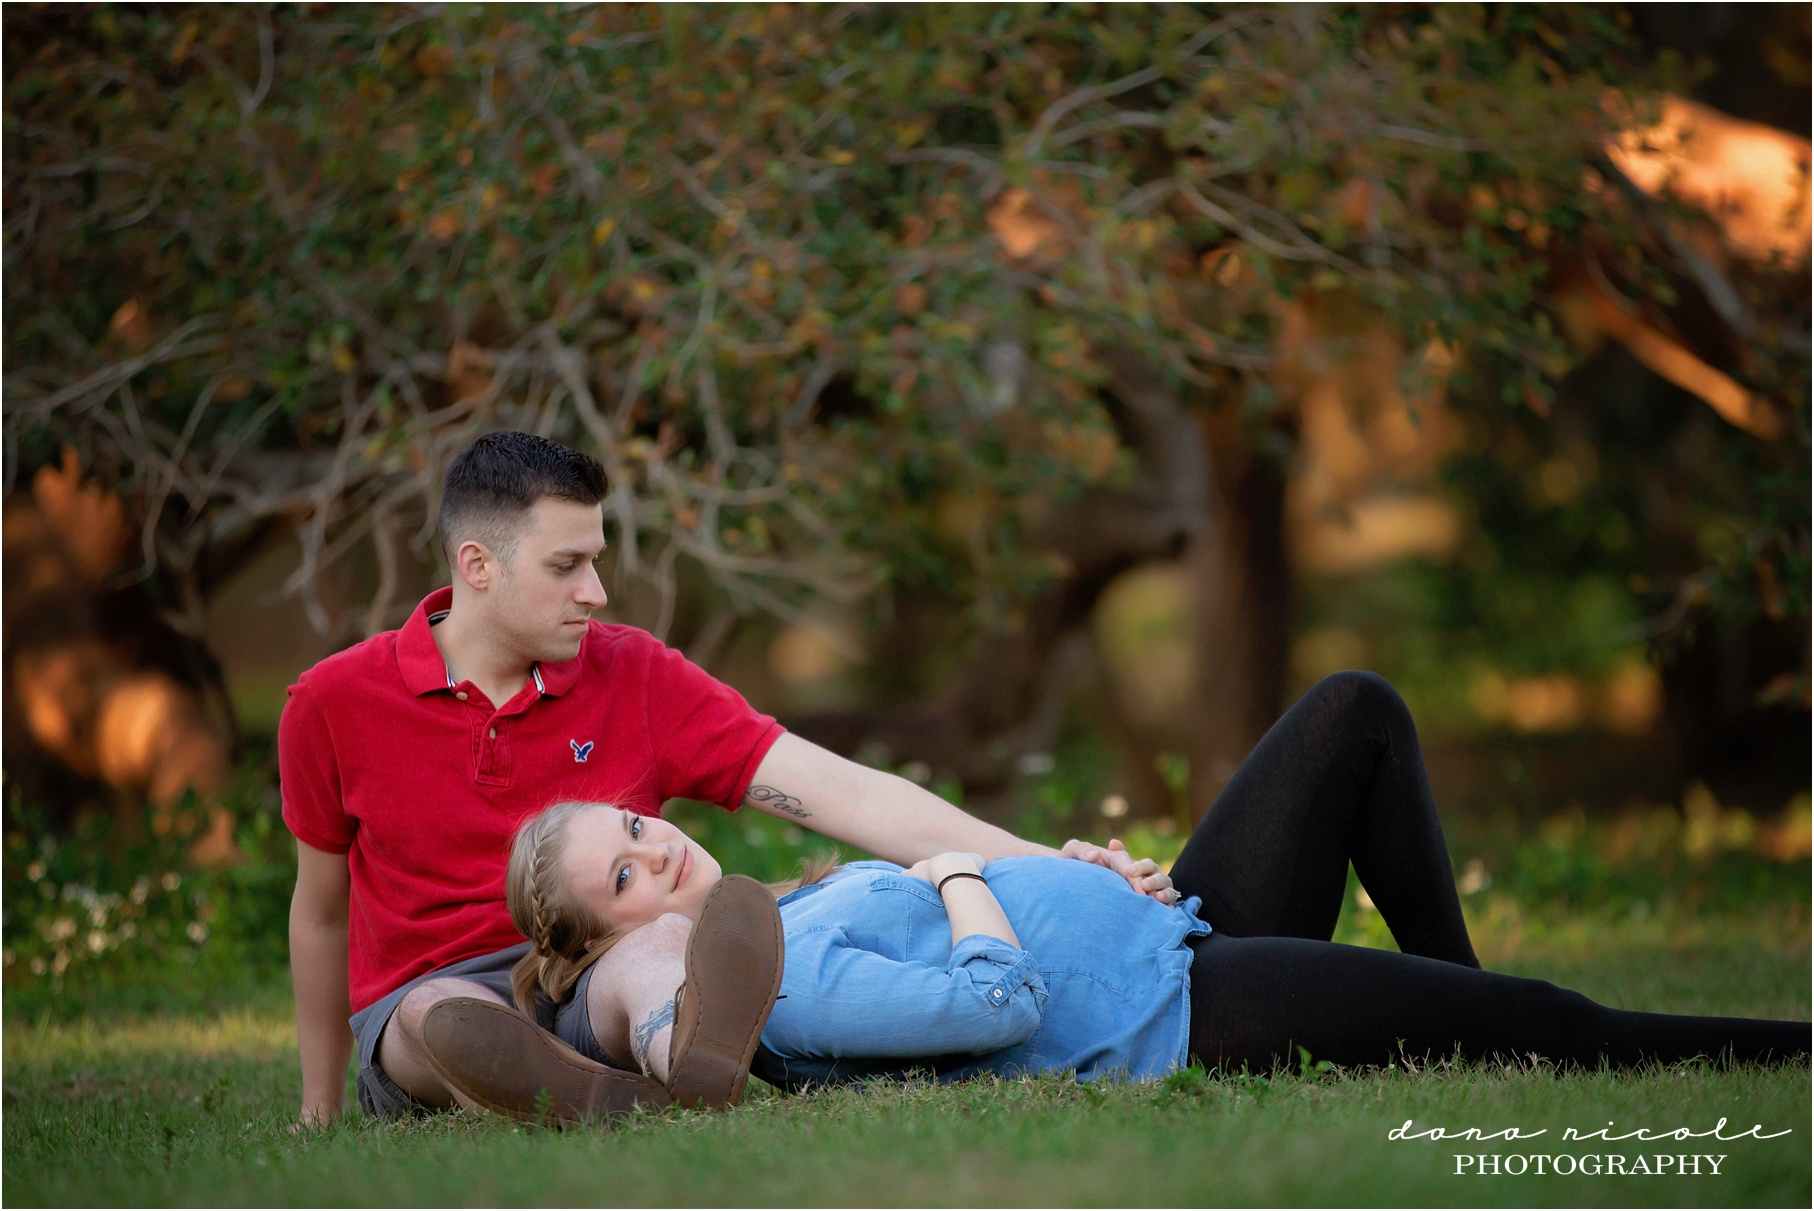 Maternity Session at Philippe Park in Safety Harbor | Dana Nicole Photography | Tampa, FL